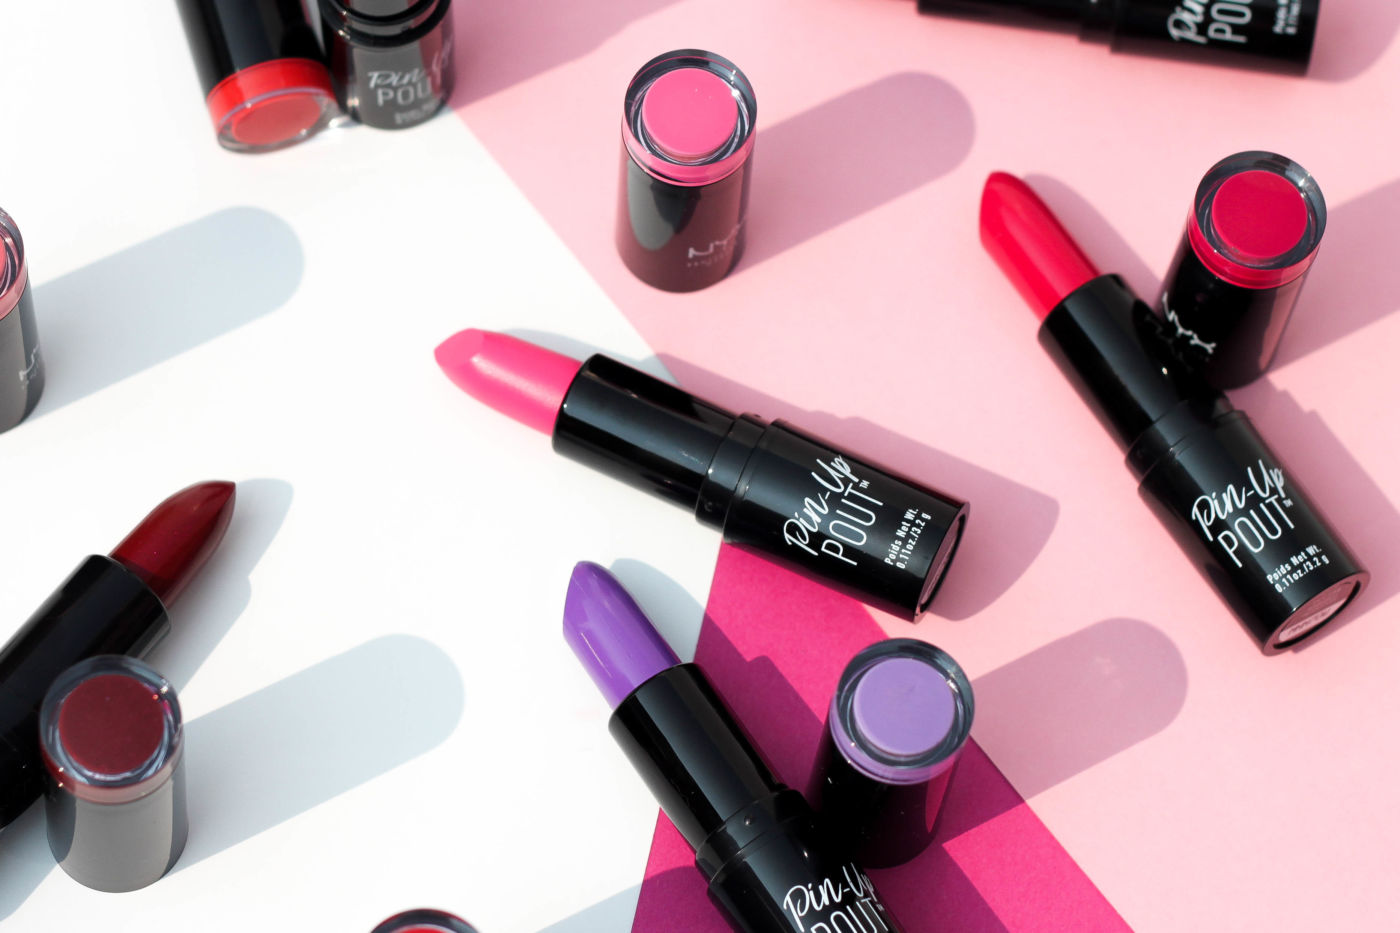 NYX Pin-Up Pout Lipstick Swatches + Review